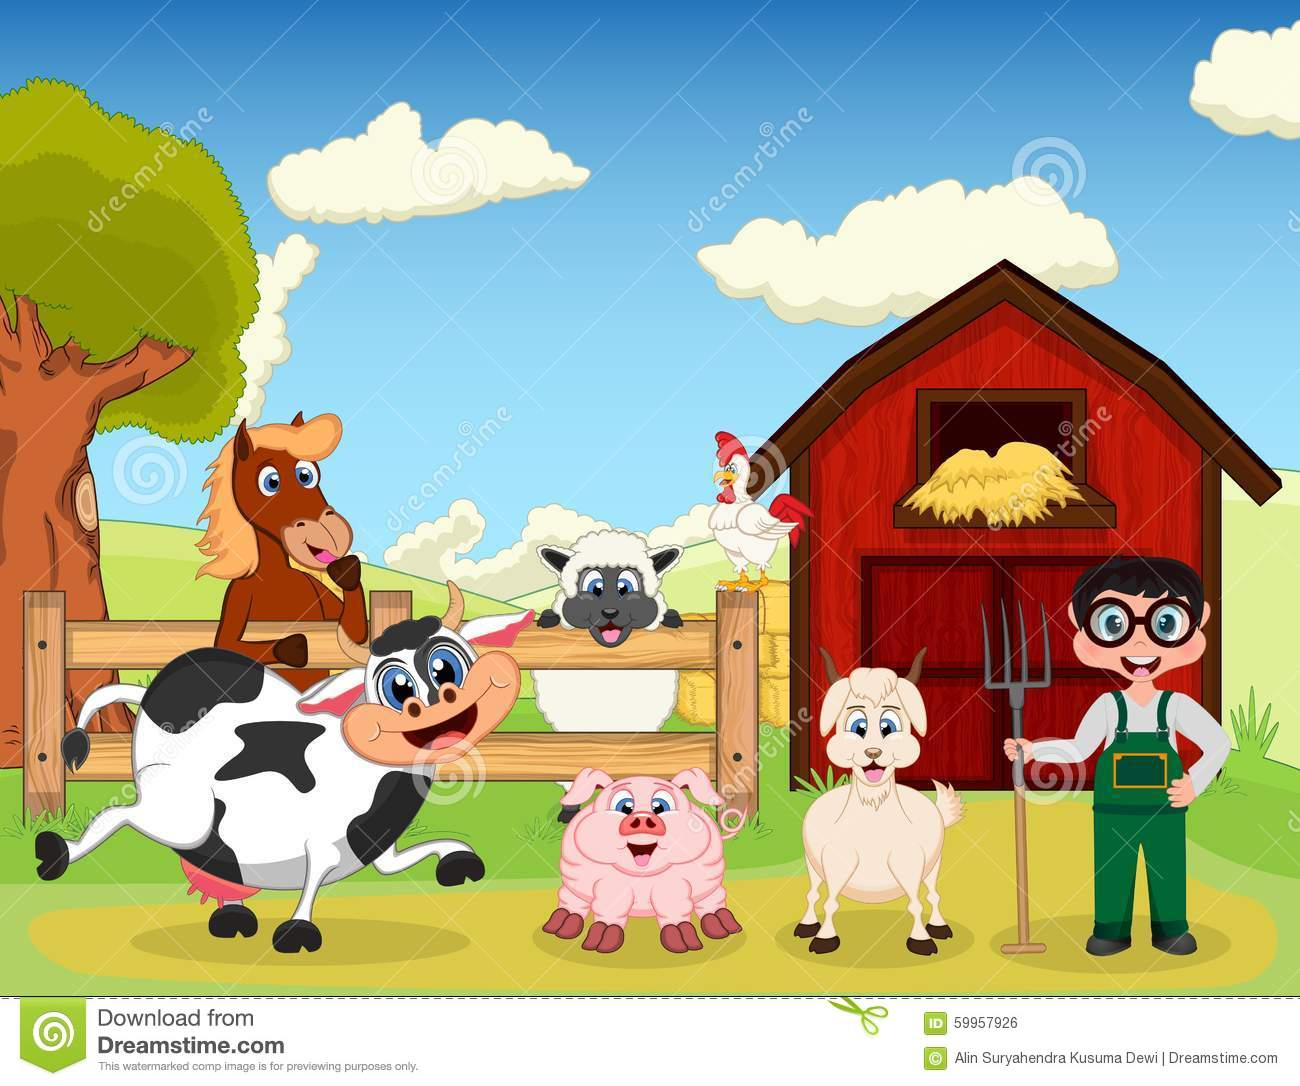 Farmer Goat Pig Horse Goat Sheep Chicken And Cow The Farm Cartoon Stock Vector Image